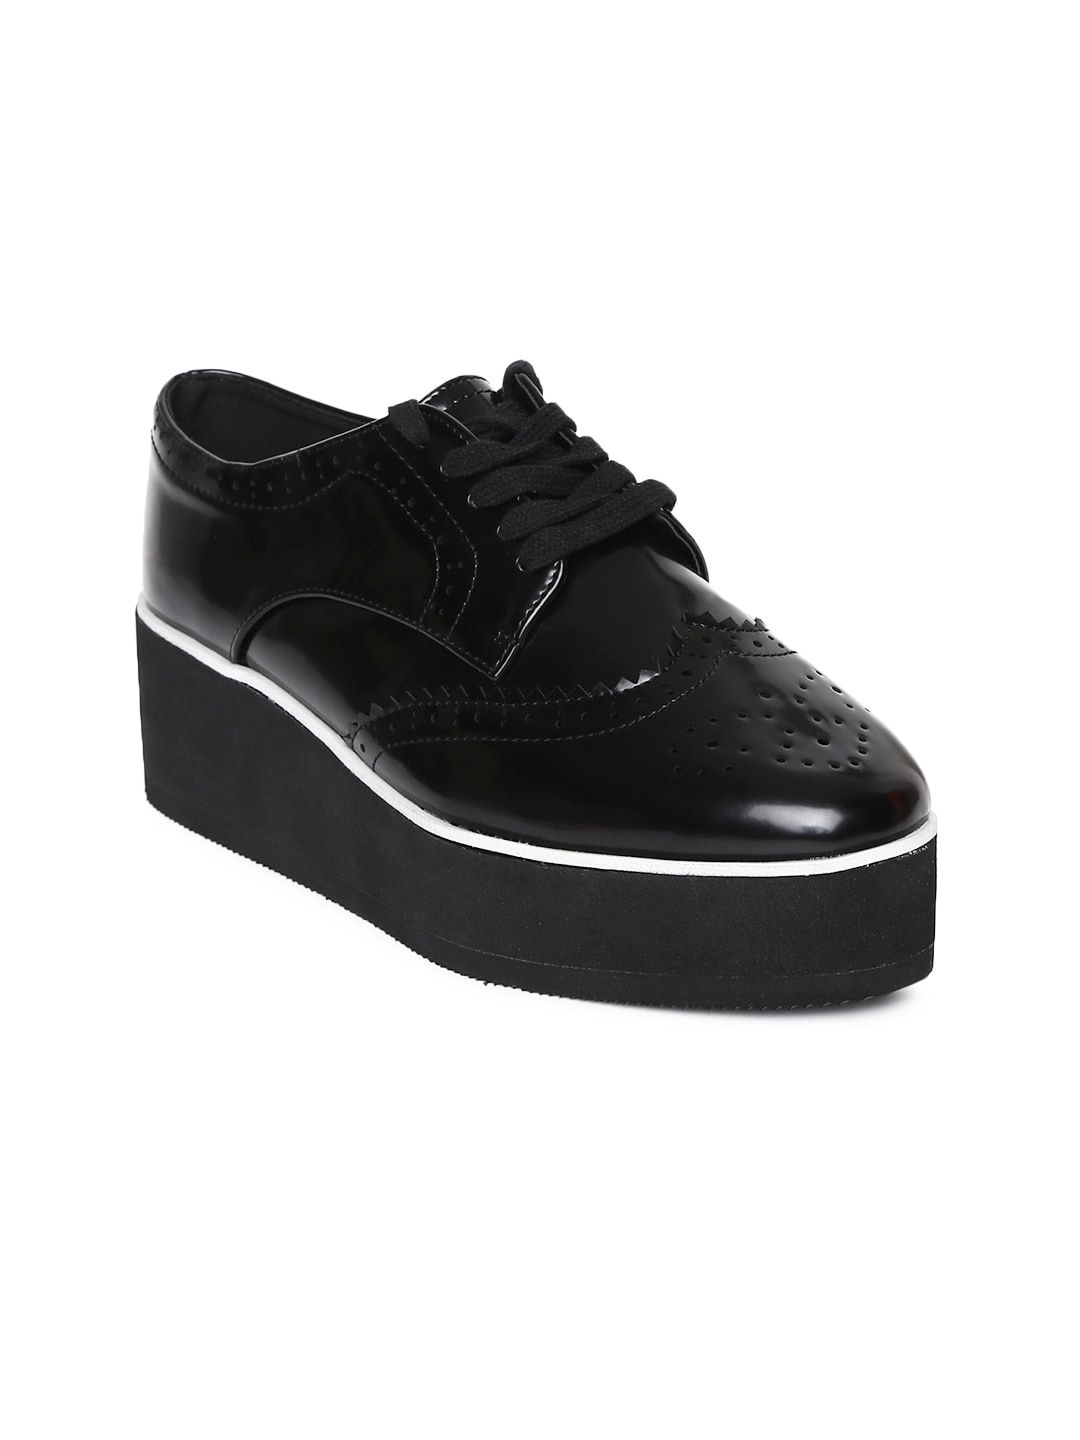 FOREVER 21 Shoes - Buy FOREVER 21 Shoes Online in India  7856cadc6